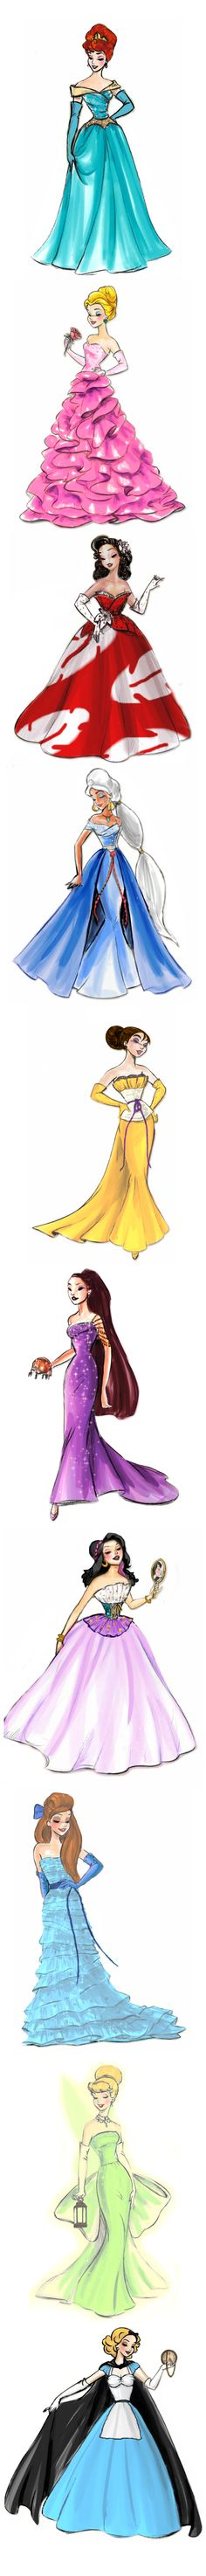 Elegant Disney Princess gowns remade into other Disney heroines